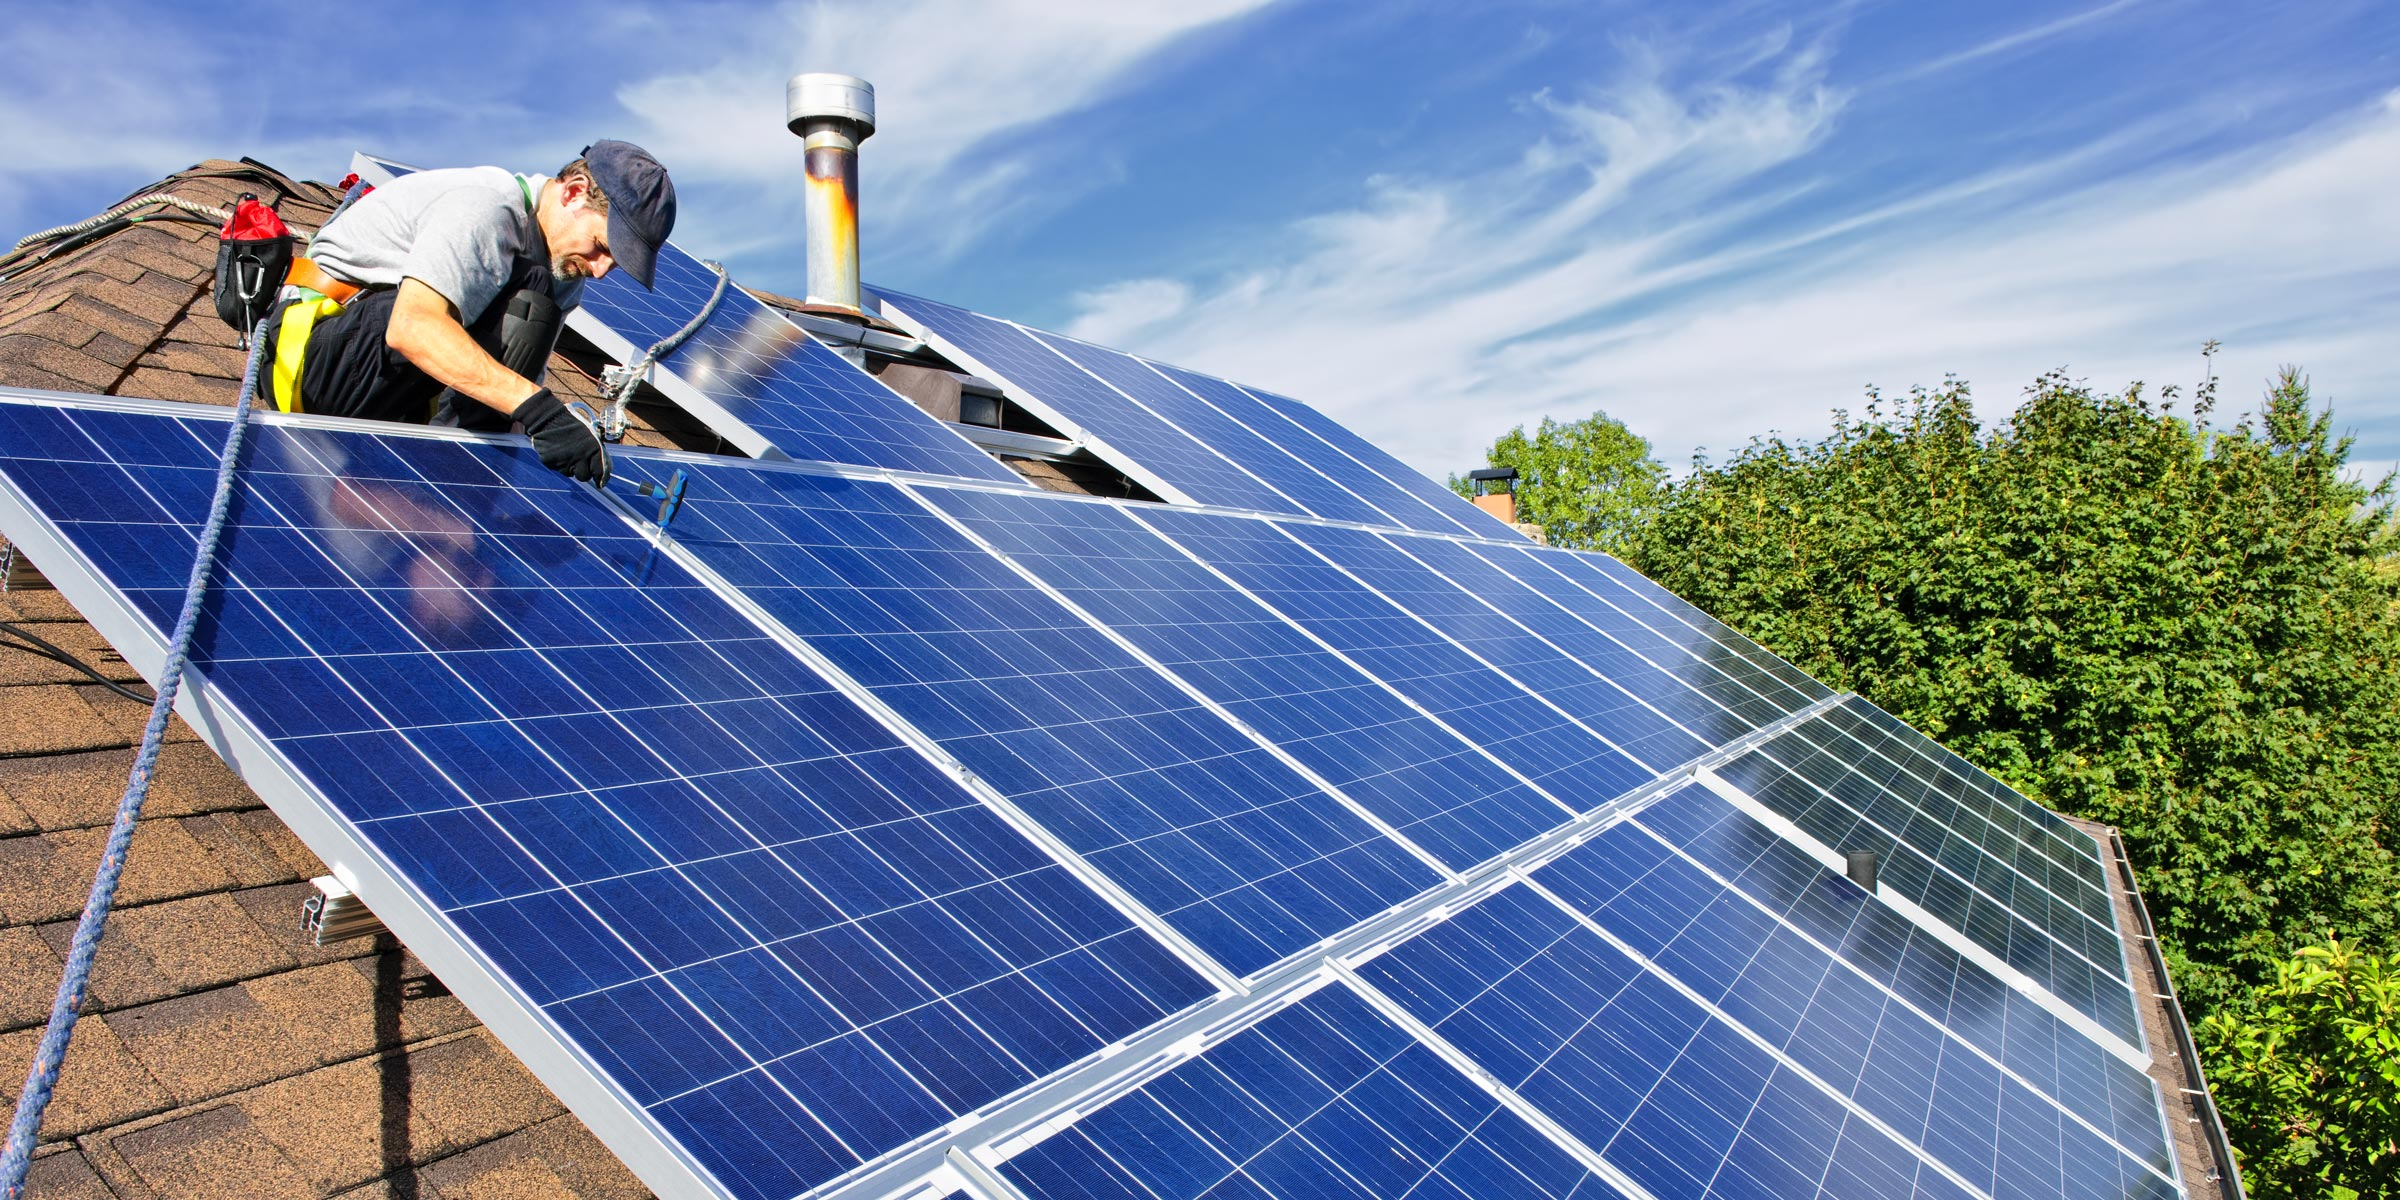 Solar Panel Installers - what do they do?